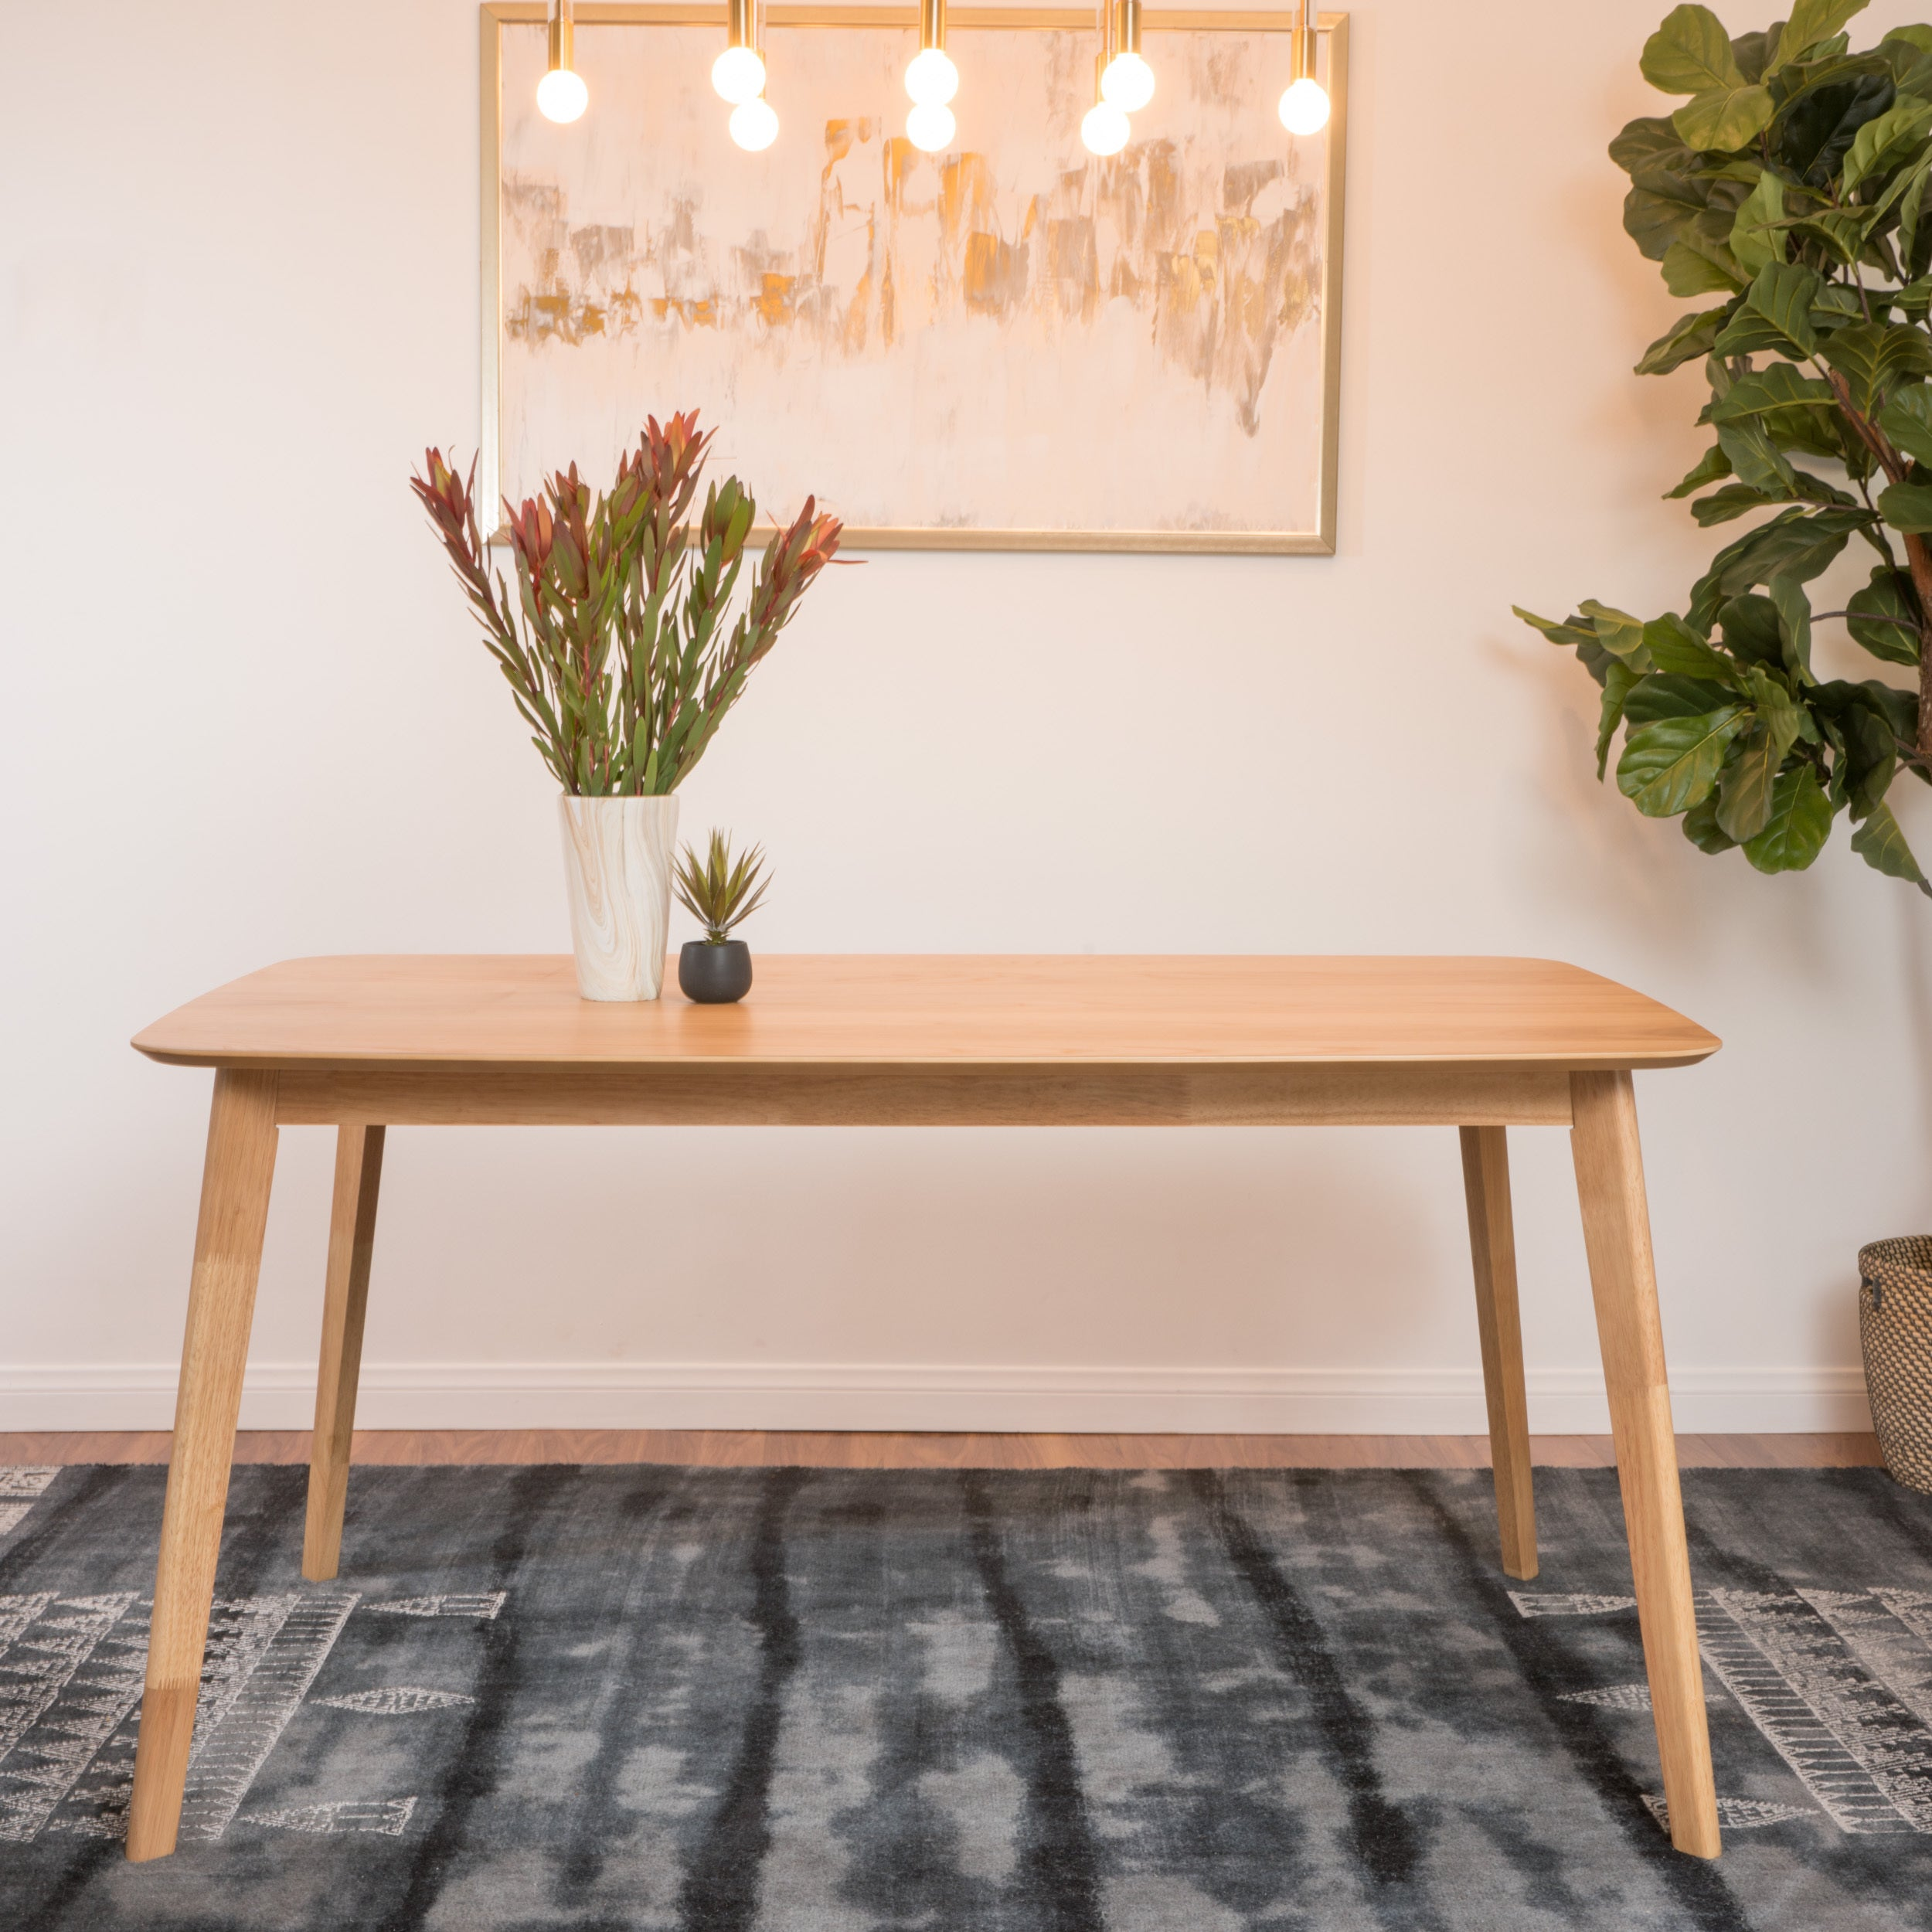 Shop nyala natural oak finish wood dining table by christopher knight home on sale free shipping today overstock com 12873885